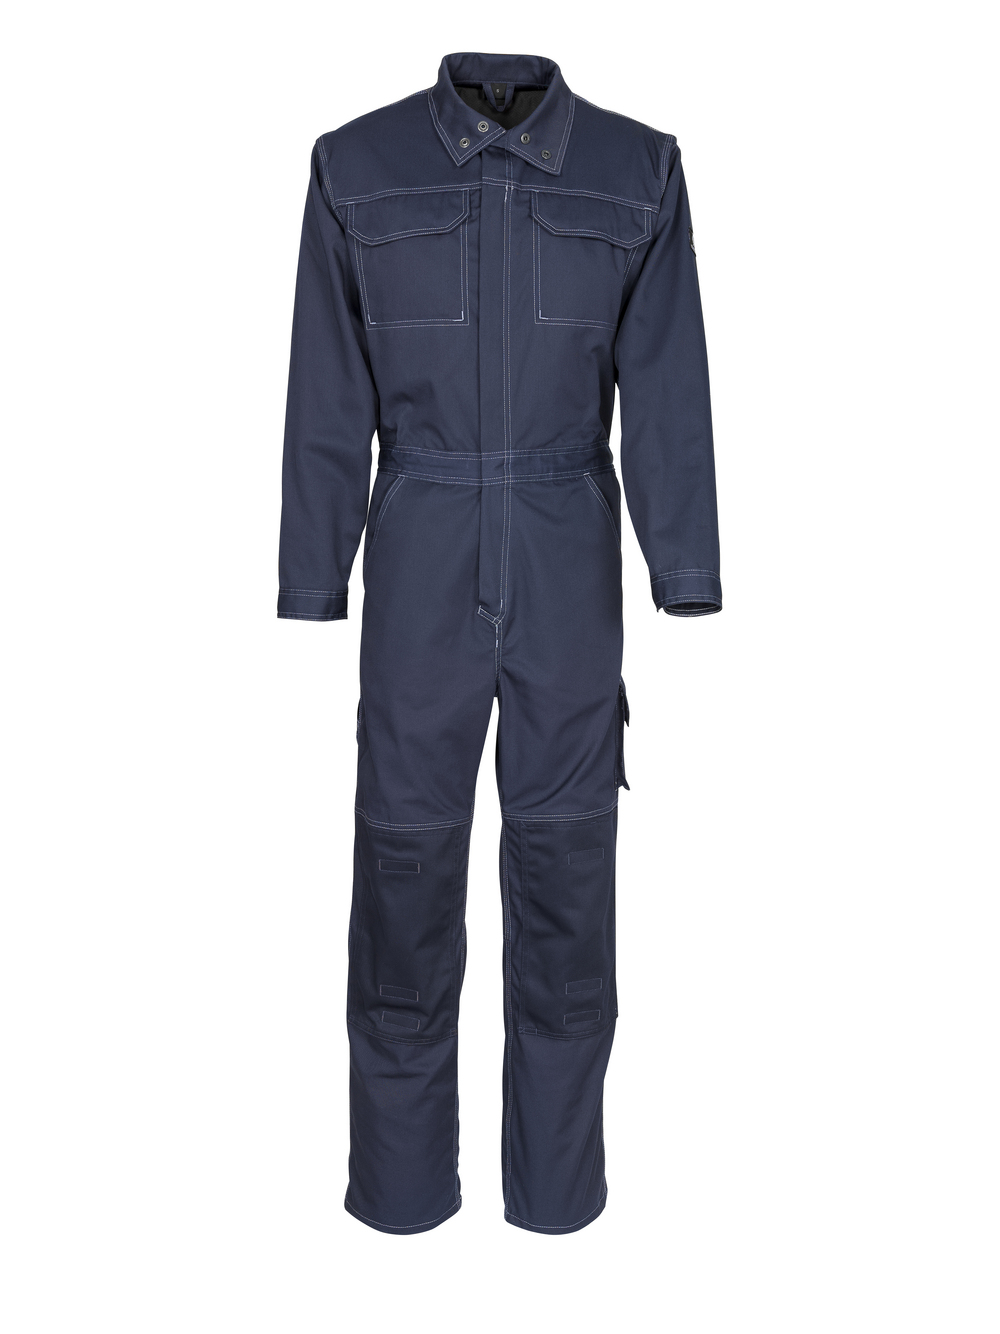 10519 442 boilersuit with kneepad pockets mascot industry